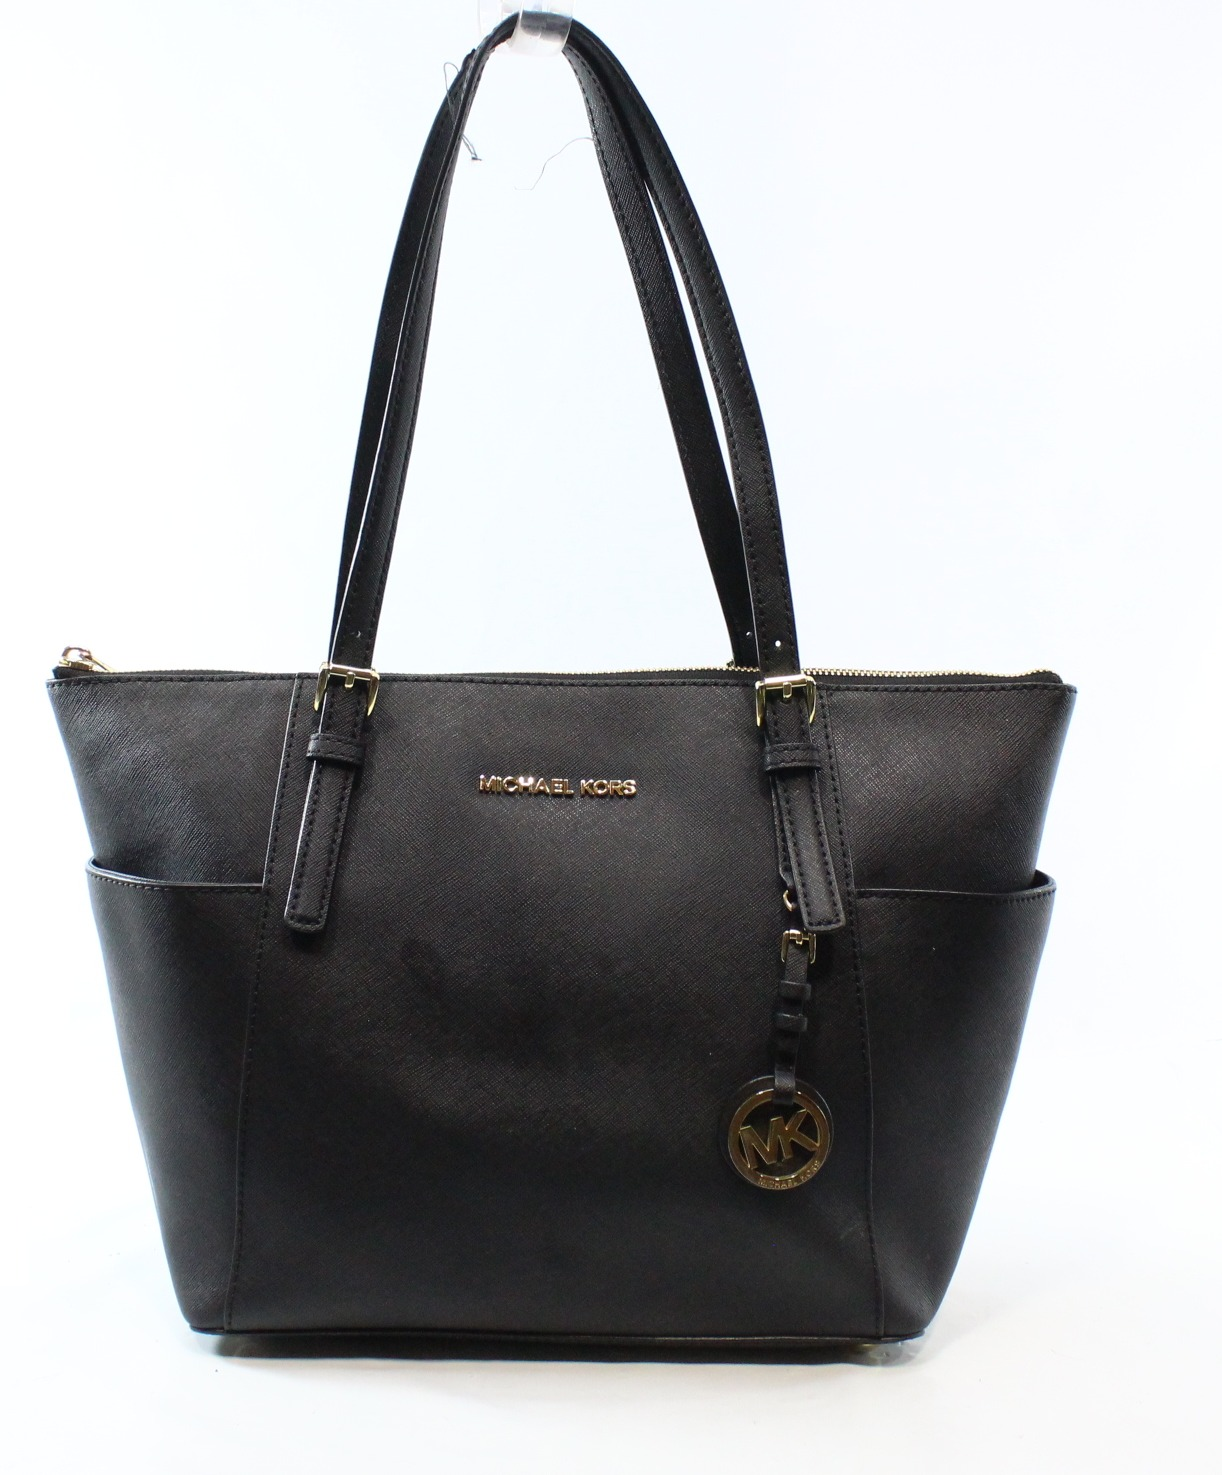 5 days ago · 12/06/ MICHAEL Michael Kors Mercer Heart Studded Leather Tote Black. Shop pf-life2.tk Cheap Michael Kors Outlet Store and Buy MICHAEL Michael Kors Mercer Heart Studded Leather Tote Black, Save Big Discount with Fast Delivery and Free Shipping Worldwide.